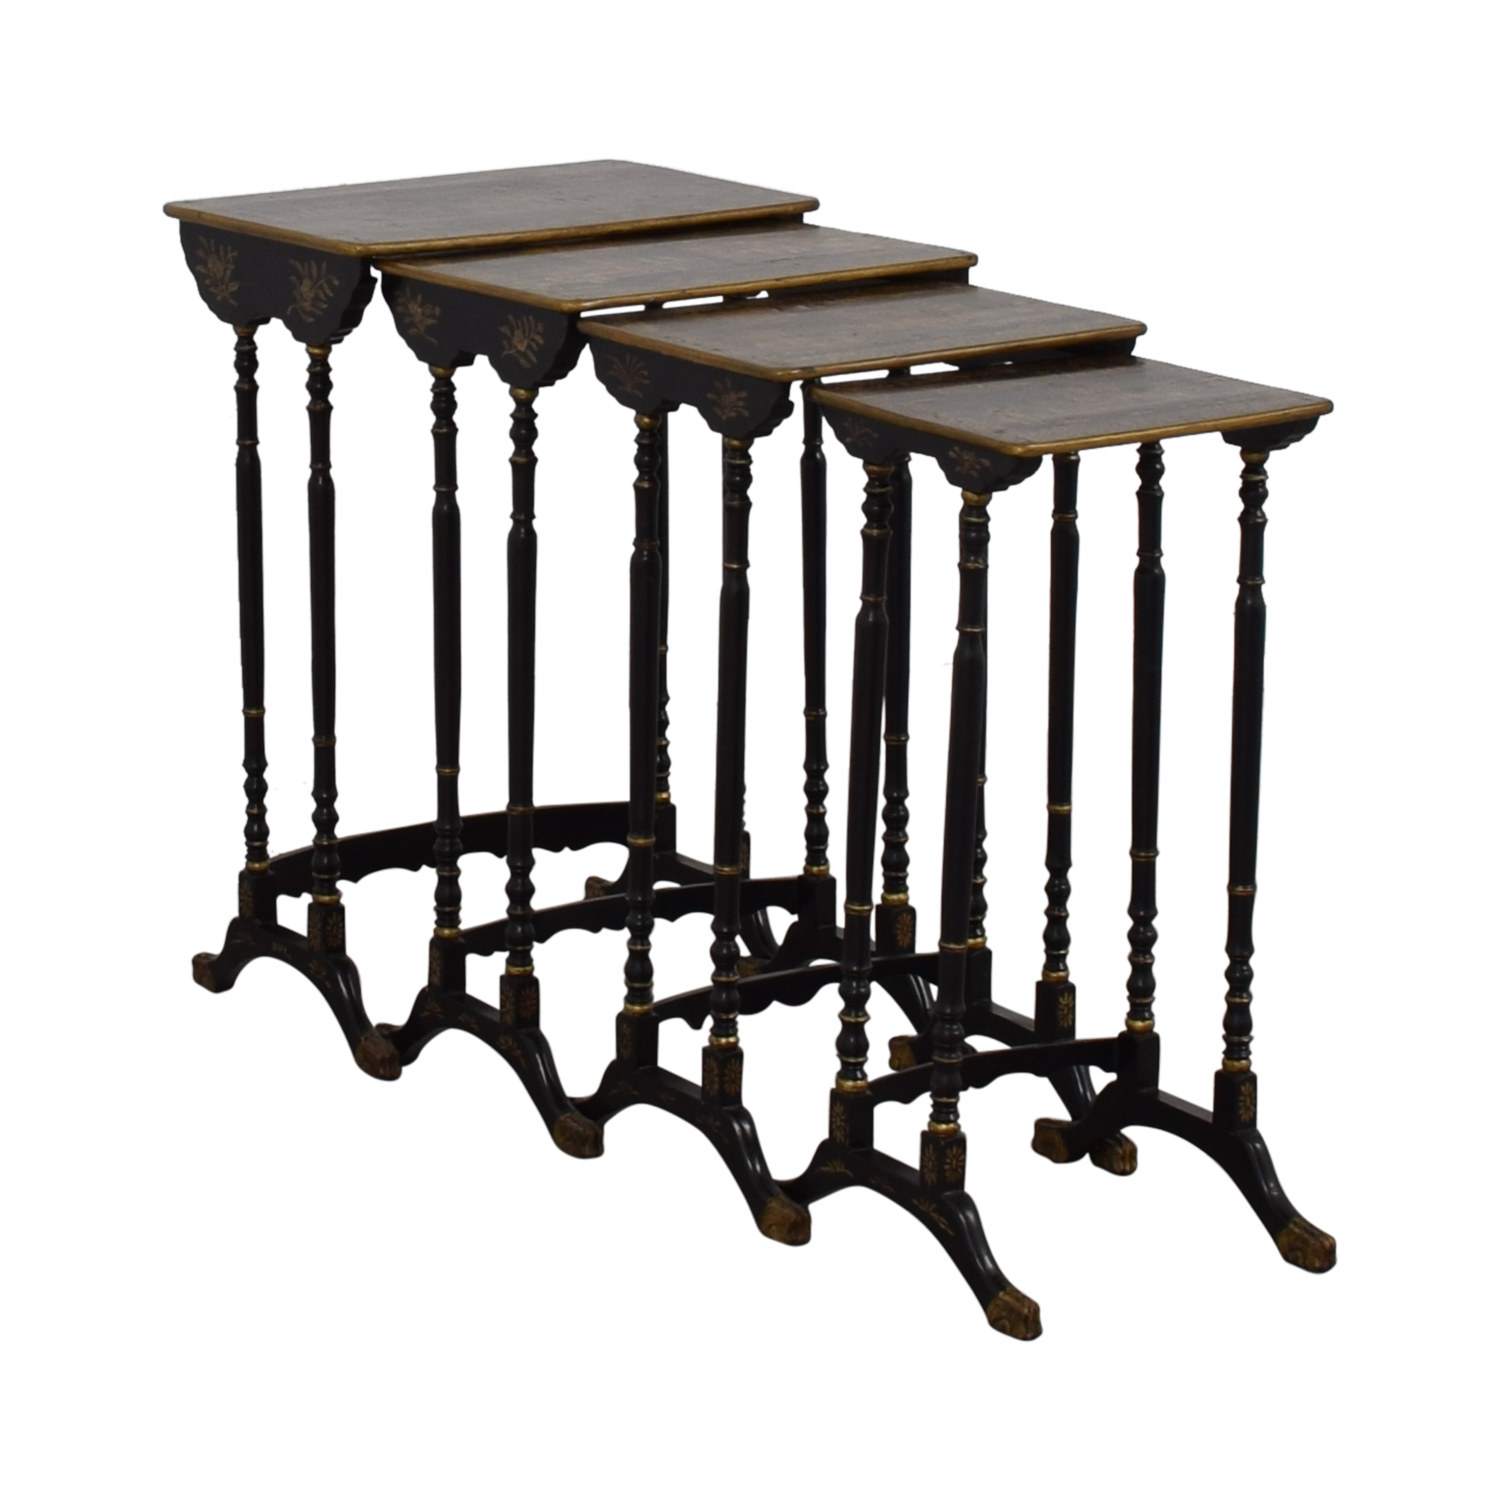 Antique Asian Nesting Tables price